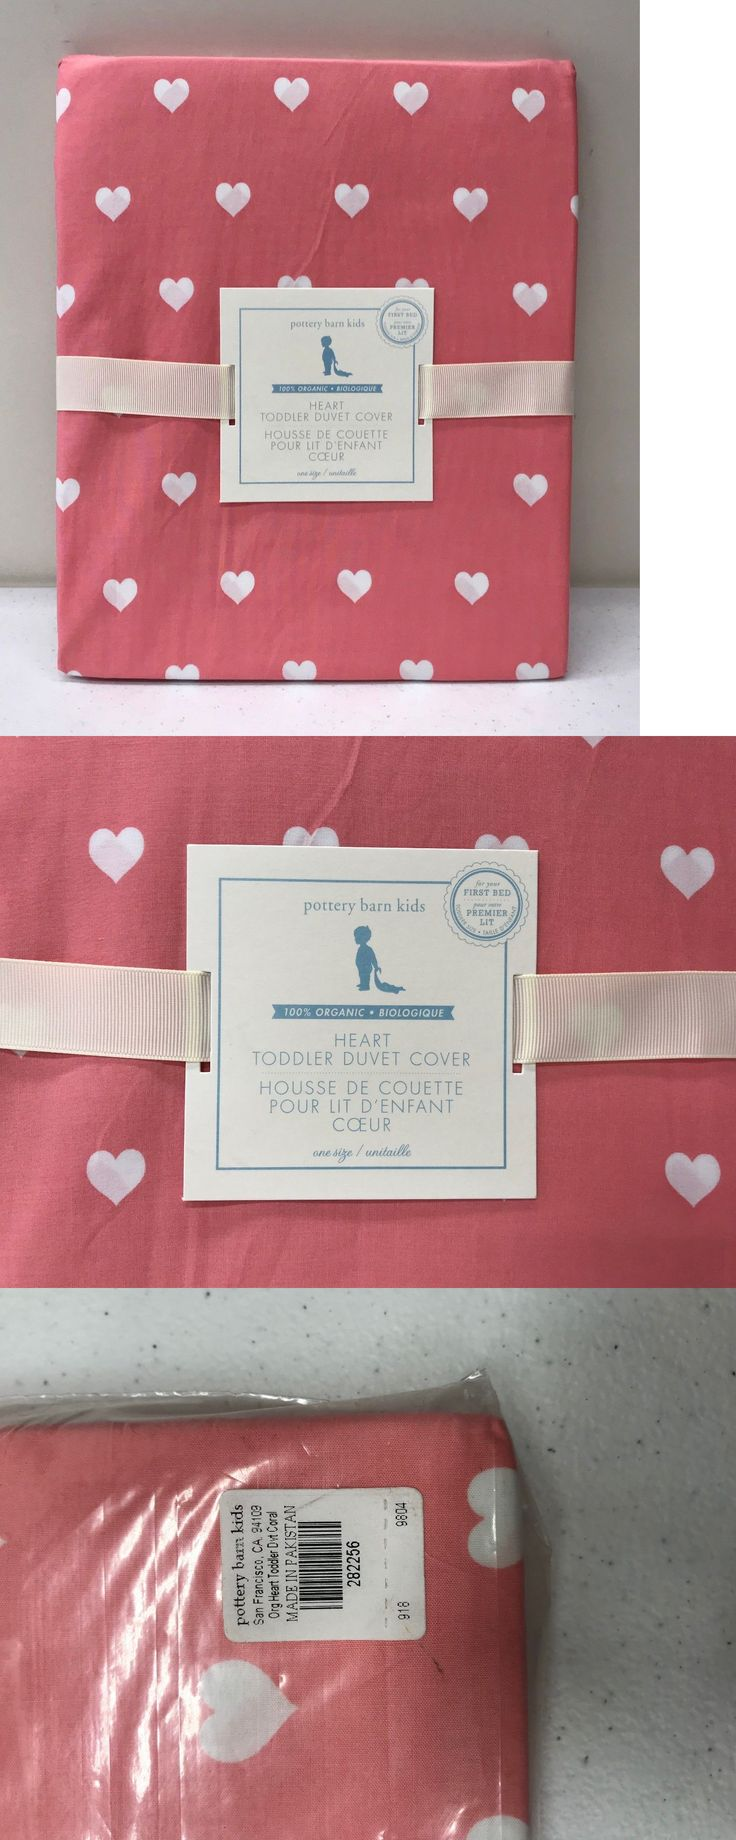 Duvet Covers and Sets 134278: New Pottery Barn Kids Organic Heart Toddler Duvet Cover, Coral -> BUY IT NOW ONLY: $44.99 on eBay!